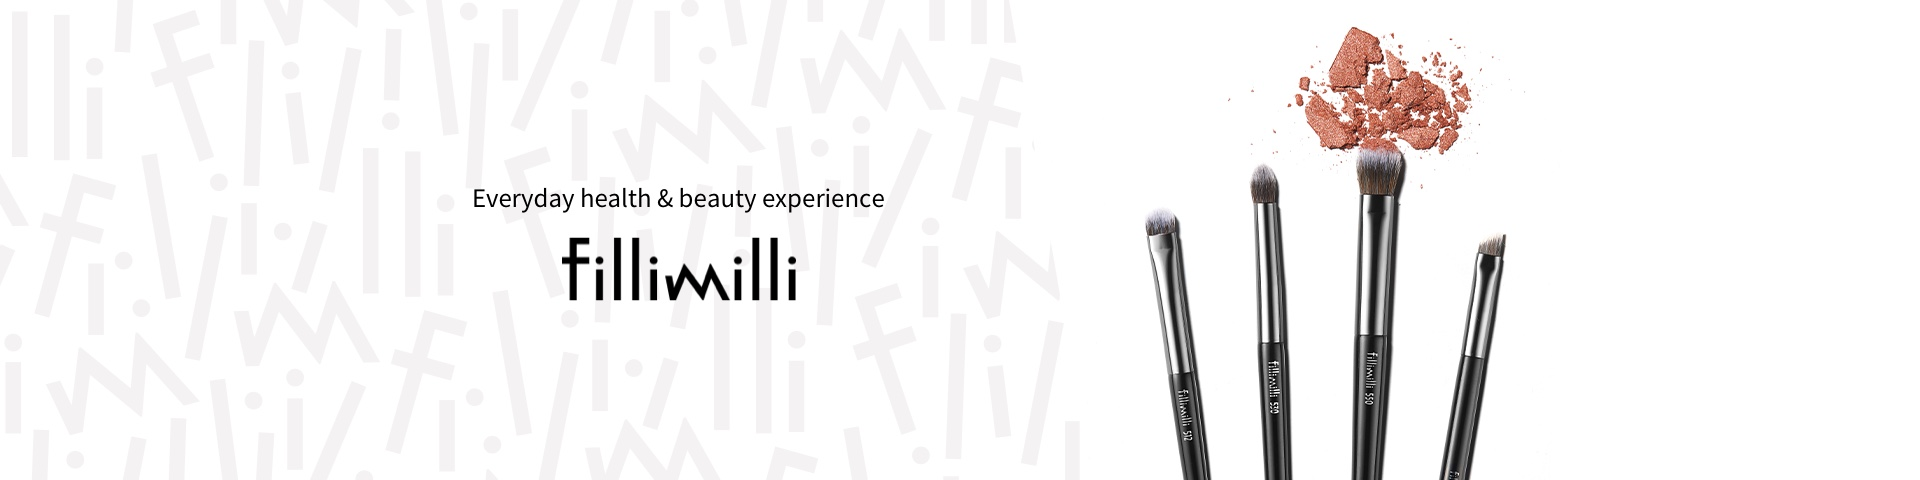 FILLIMILLI EYE SHADOW BRUSH DEFINING 511 Point the shadow brush for a delicate and subtle eye makeup